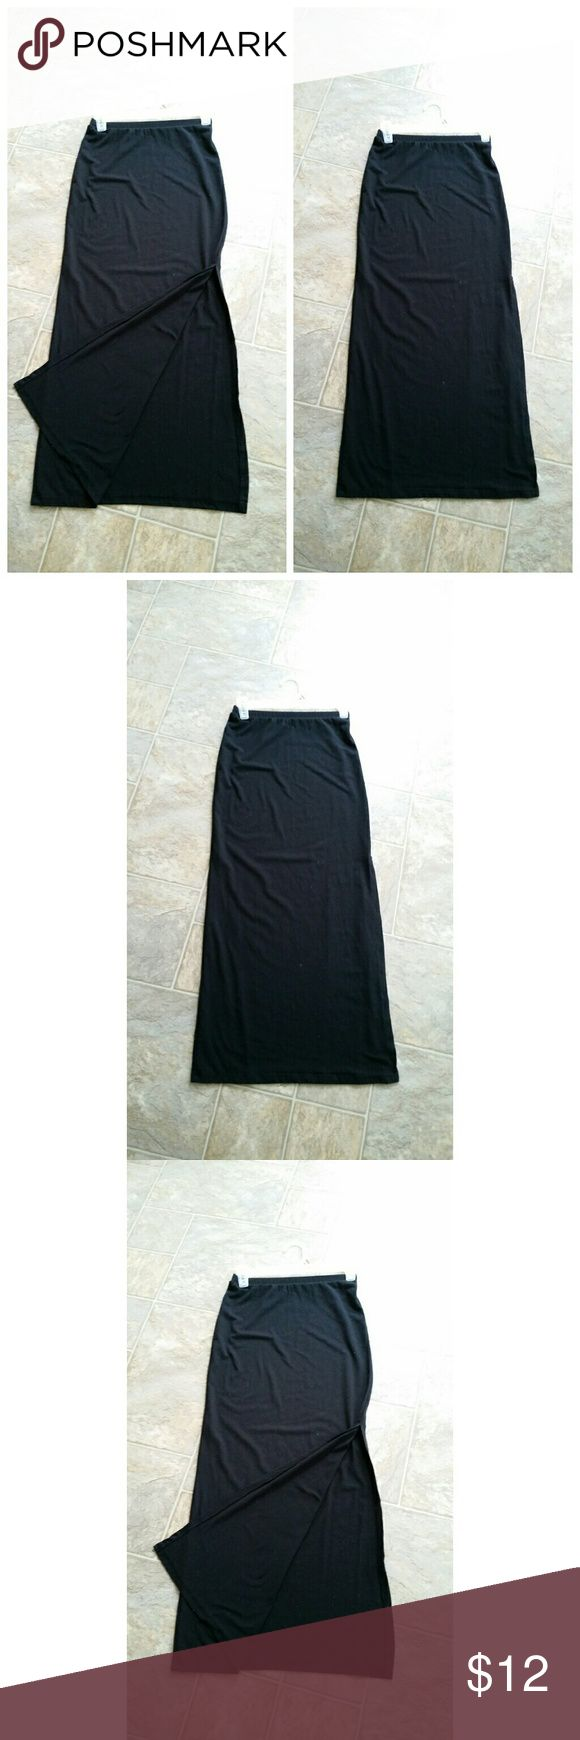 Maxi skirt with Slit Black, cotton maxi skirt with slit on the side. Really soft, comfy and cute :) only worn a few times. About 36 inch length Skirts Maxi